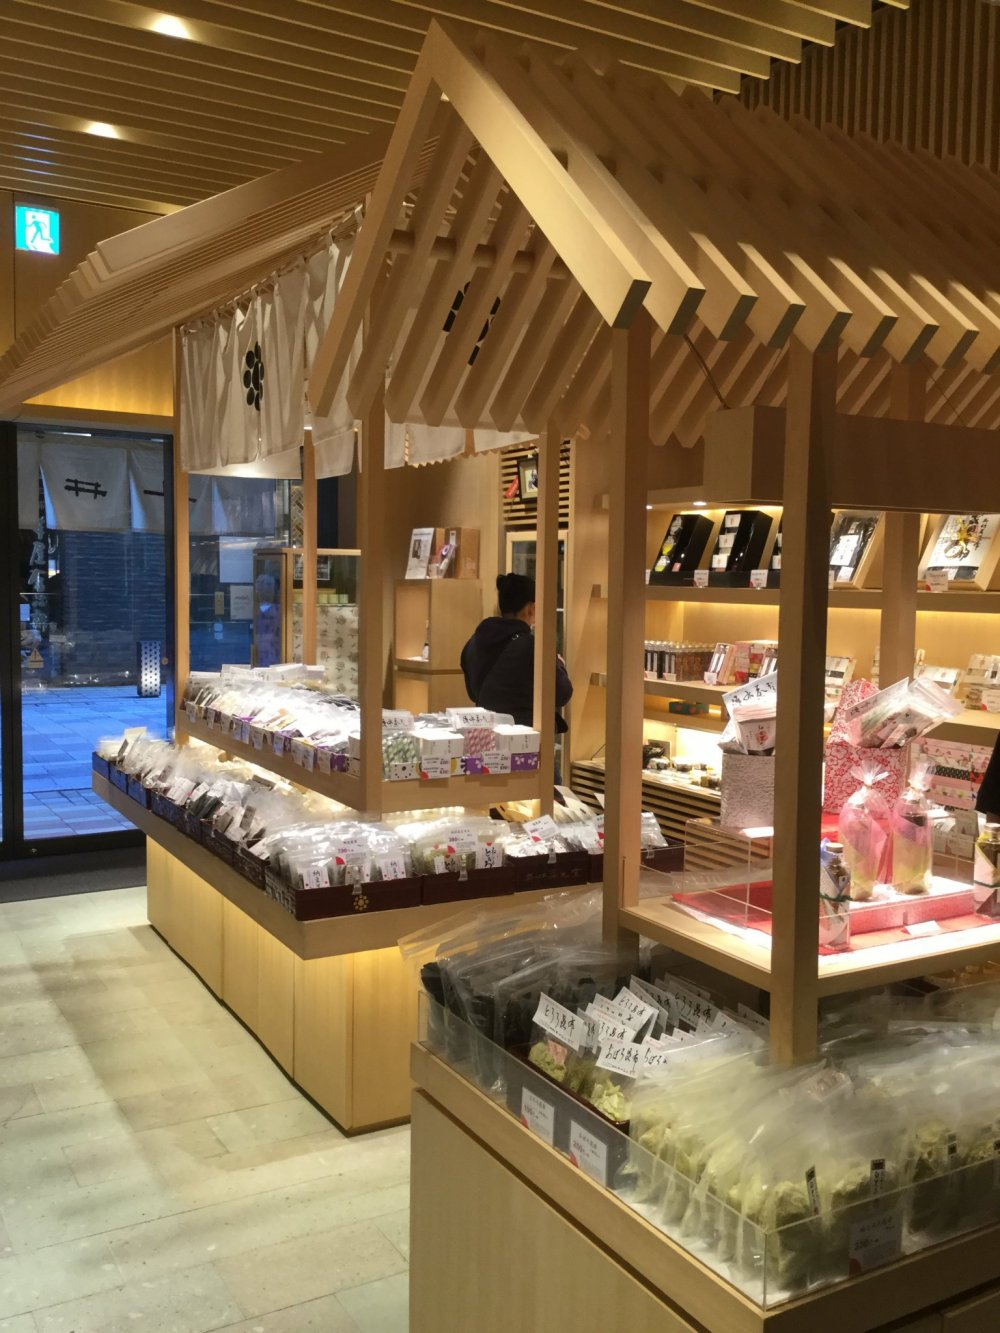 The floor of the shop is made of Shakudani, a volcanic rock found in Fukui Prefecture and was significantly important to the business as they traded these for kombu in Hokkaido